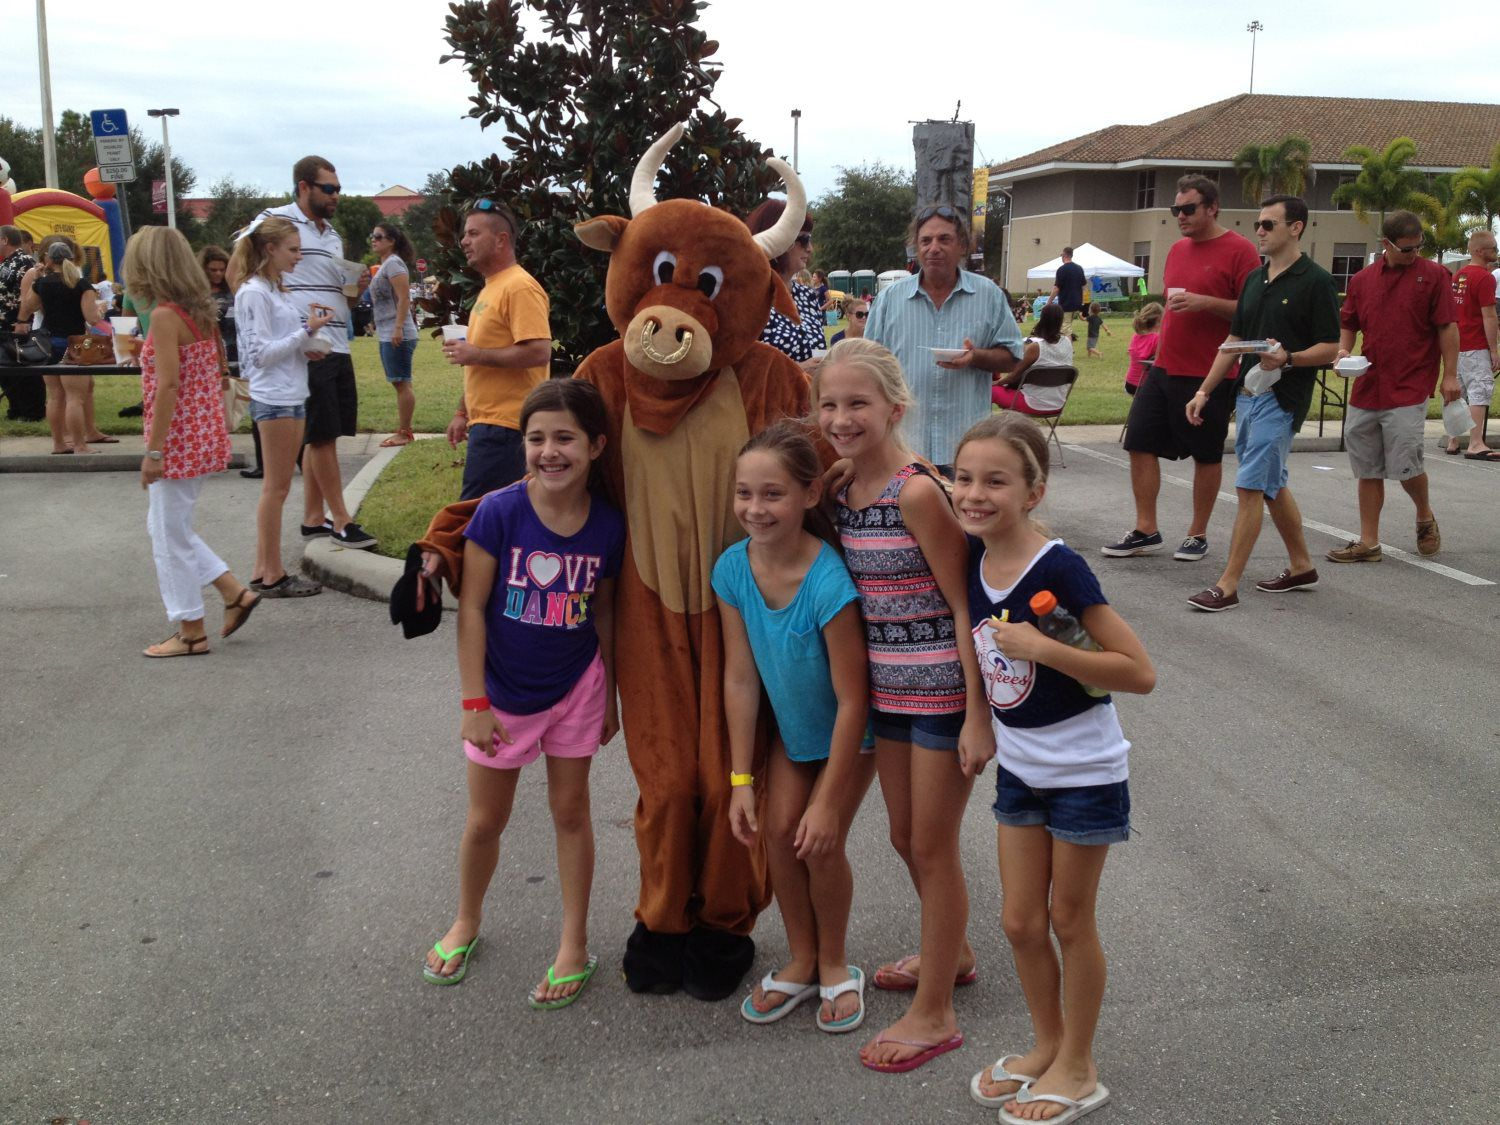 kids taking photo with a mascot